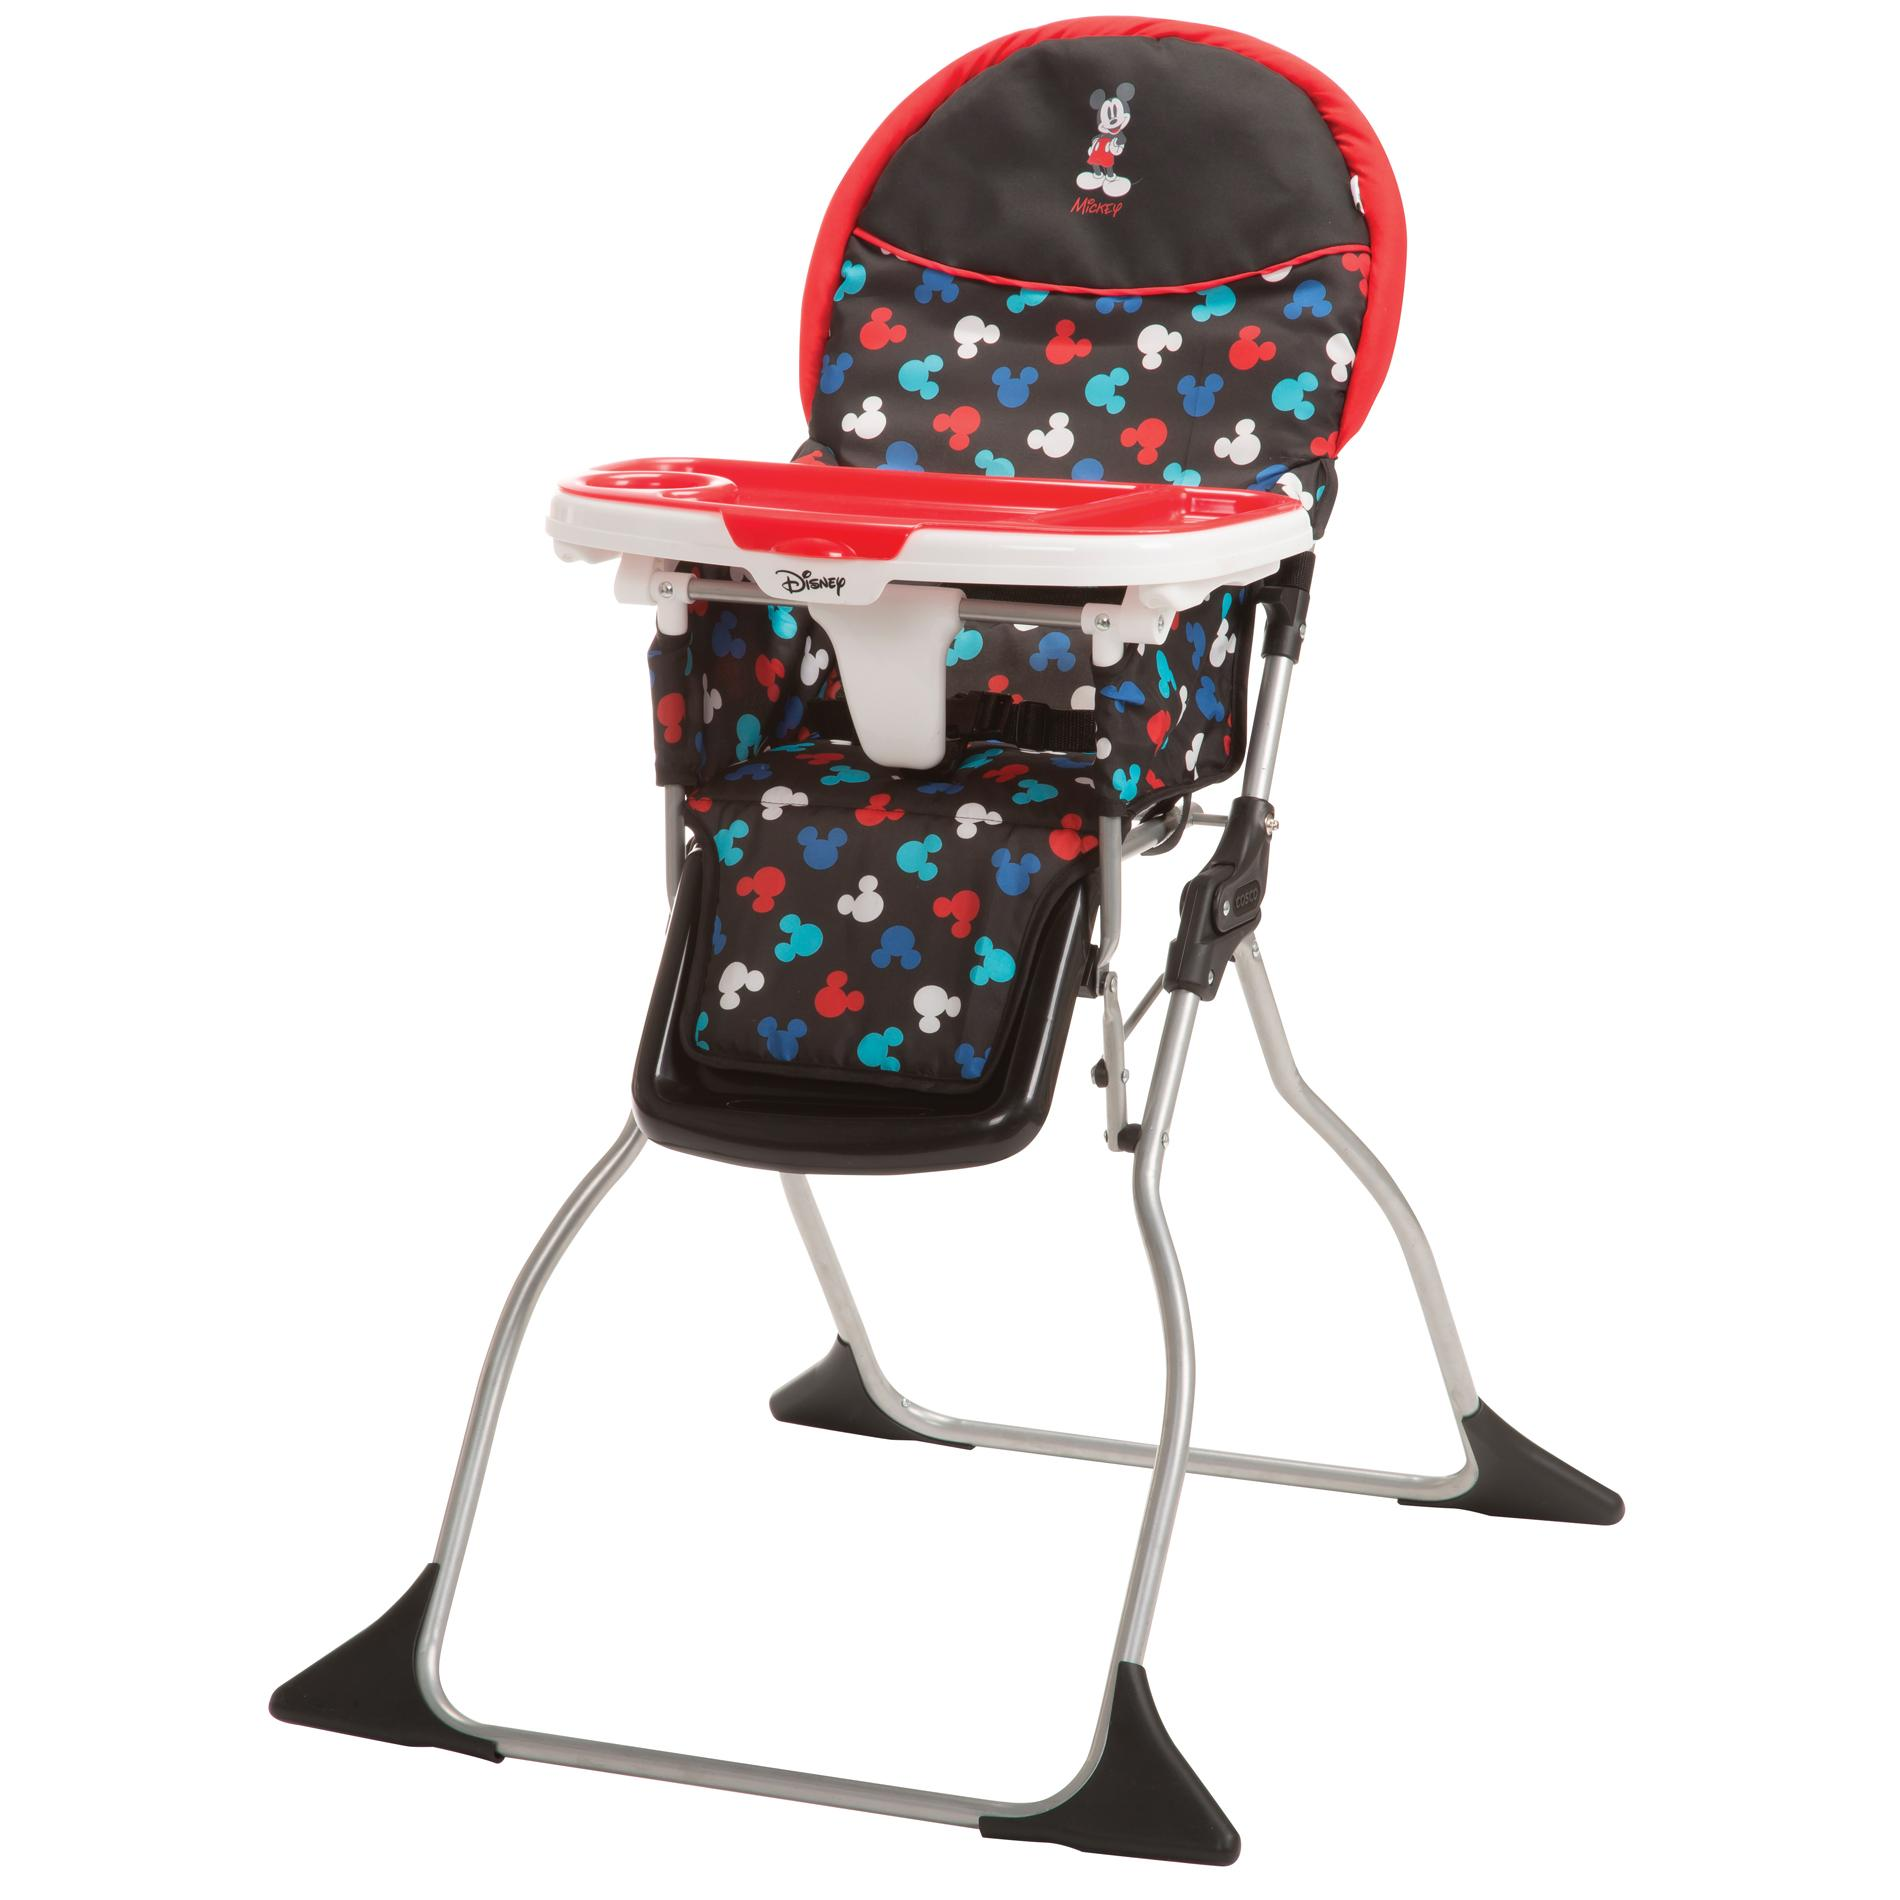 Mickey Mouse Chairs For Toddlers Baby Mickey Mouse Chair Retailadvisor